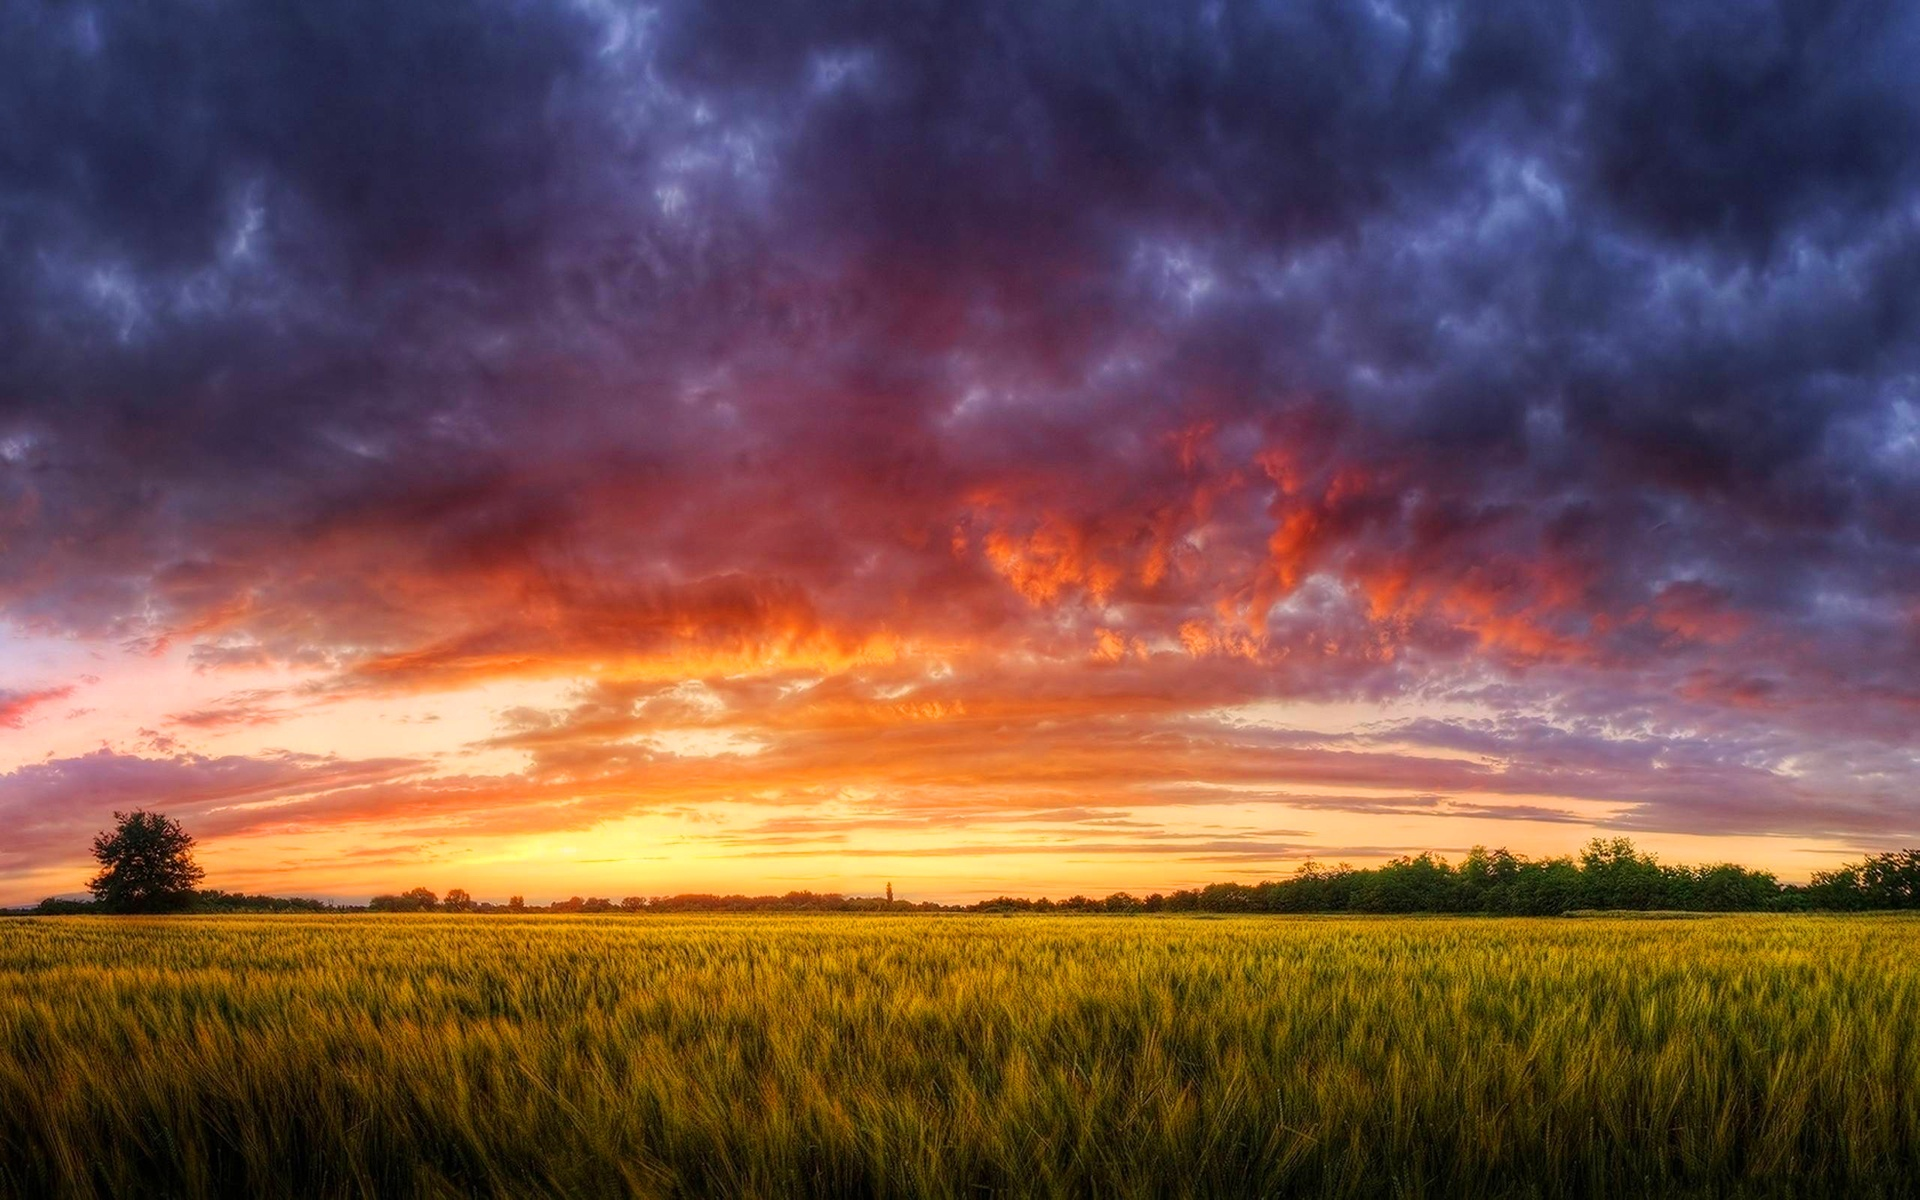 Sunrise Background   Wallpaper High Definition High Quality 1920x1200